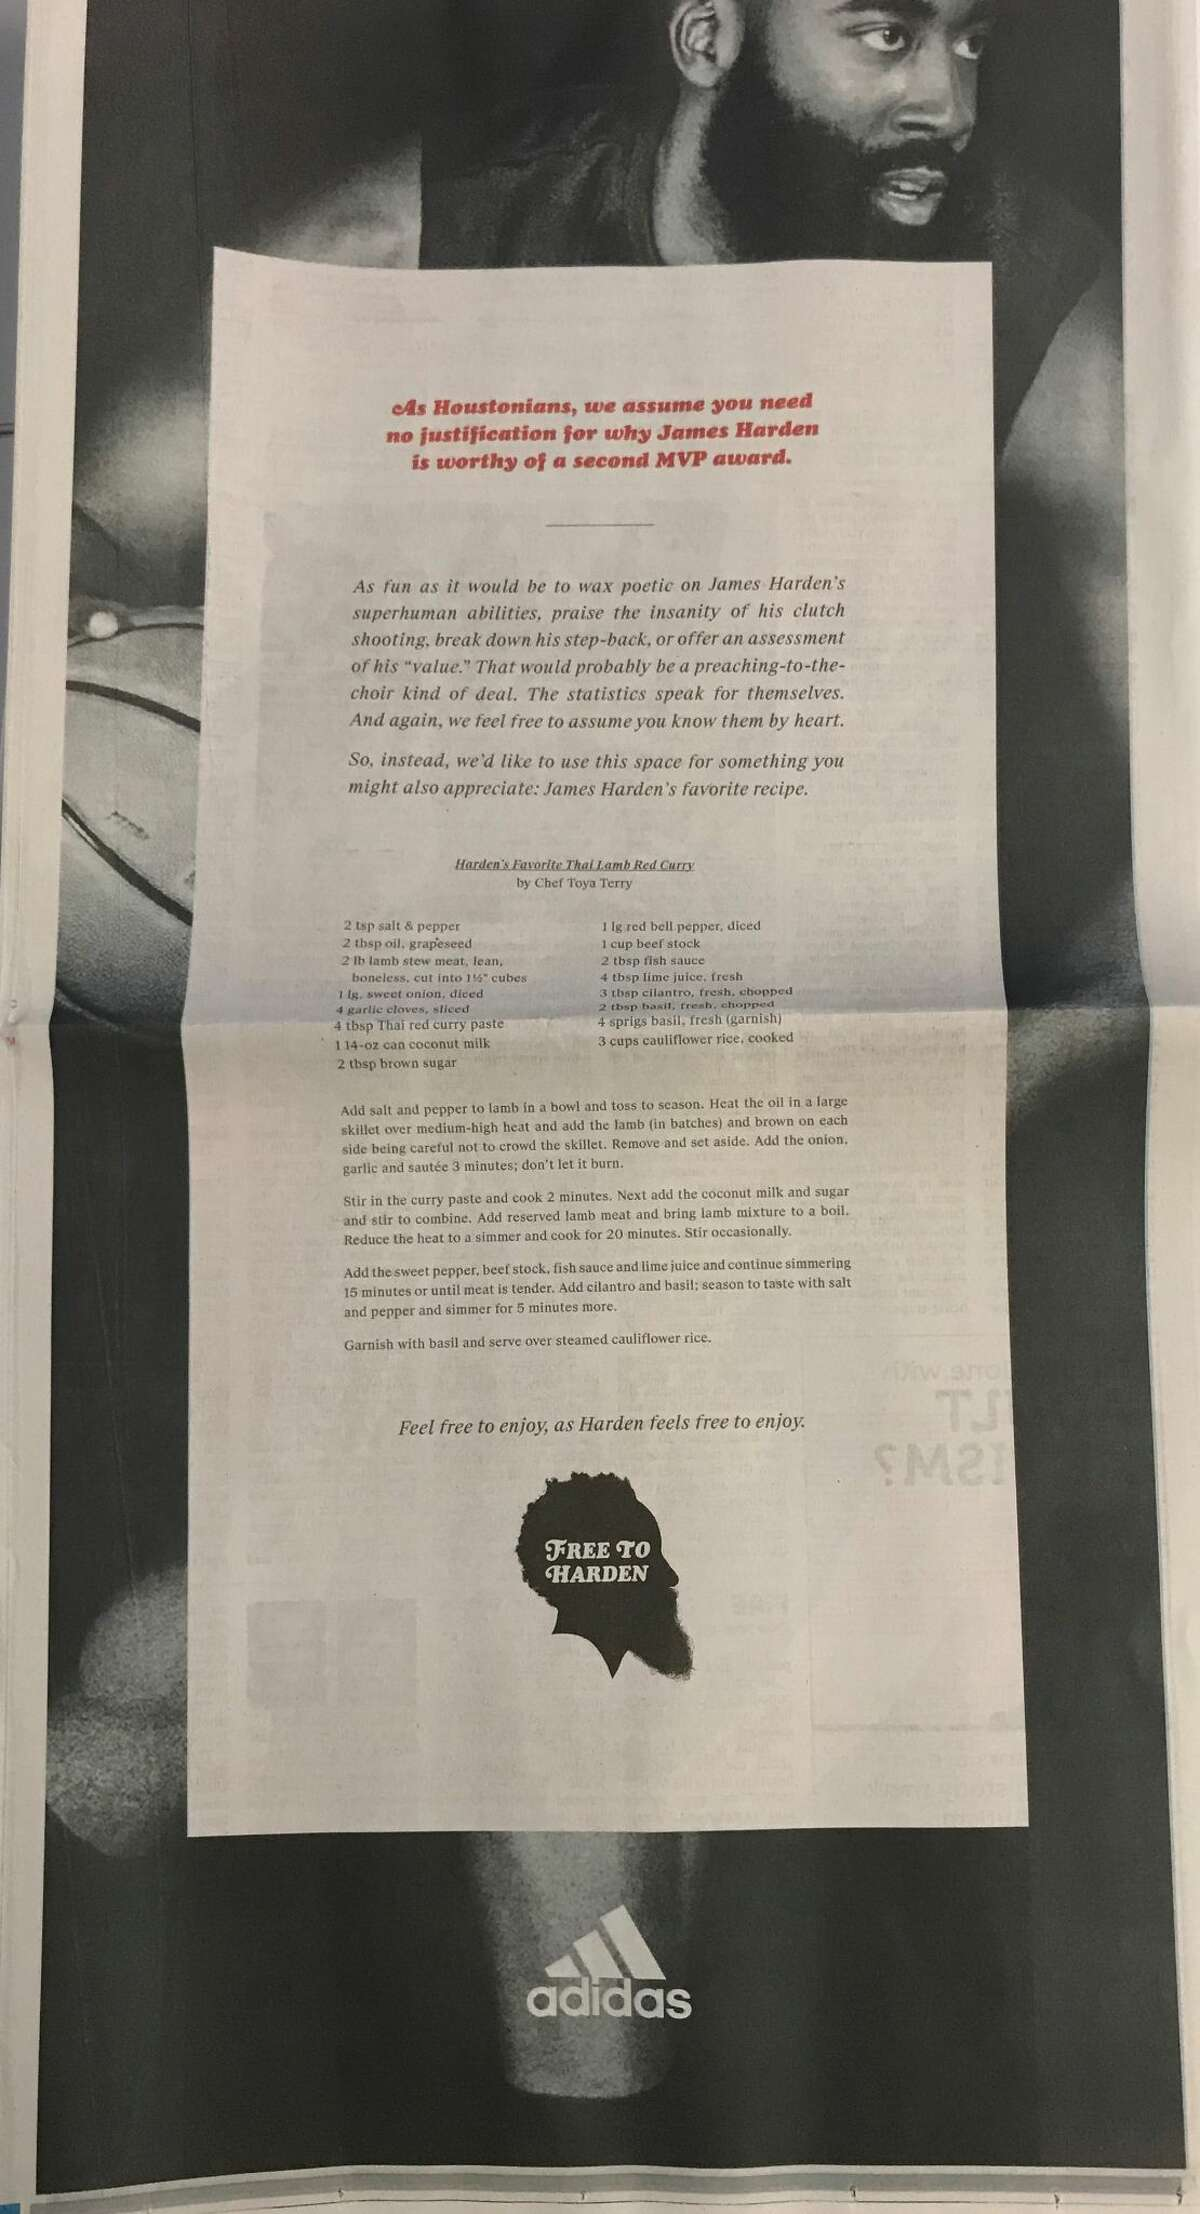 PHOTOS: See what the ad in the Milwaukee paper looked like on Tuesday Adidas took out a full-page ad in the Houston Chronicle on Thursday, March 28, 2019 to share with everyone the receipe for James Harden's favorite meal.